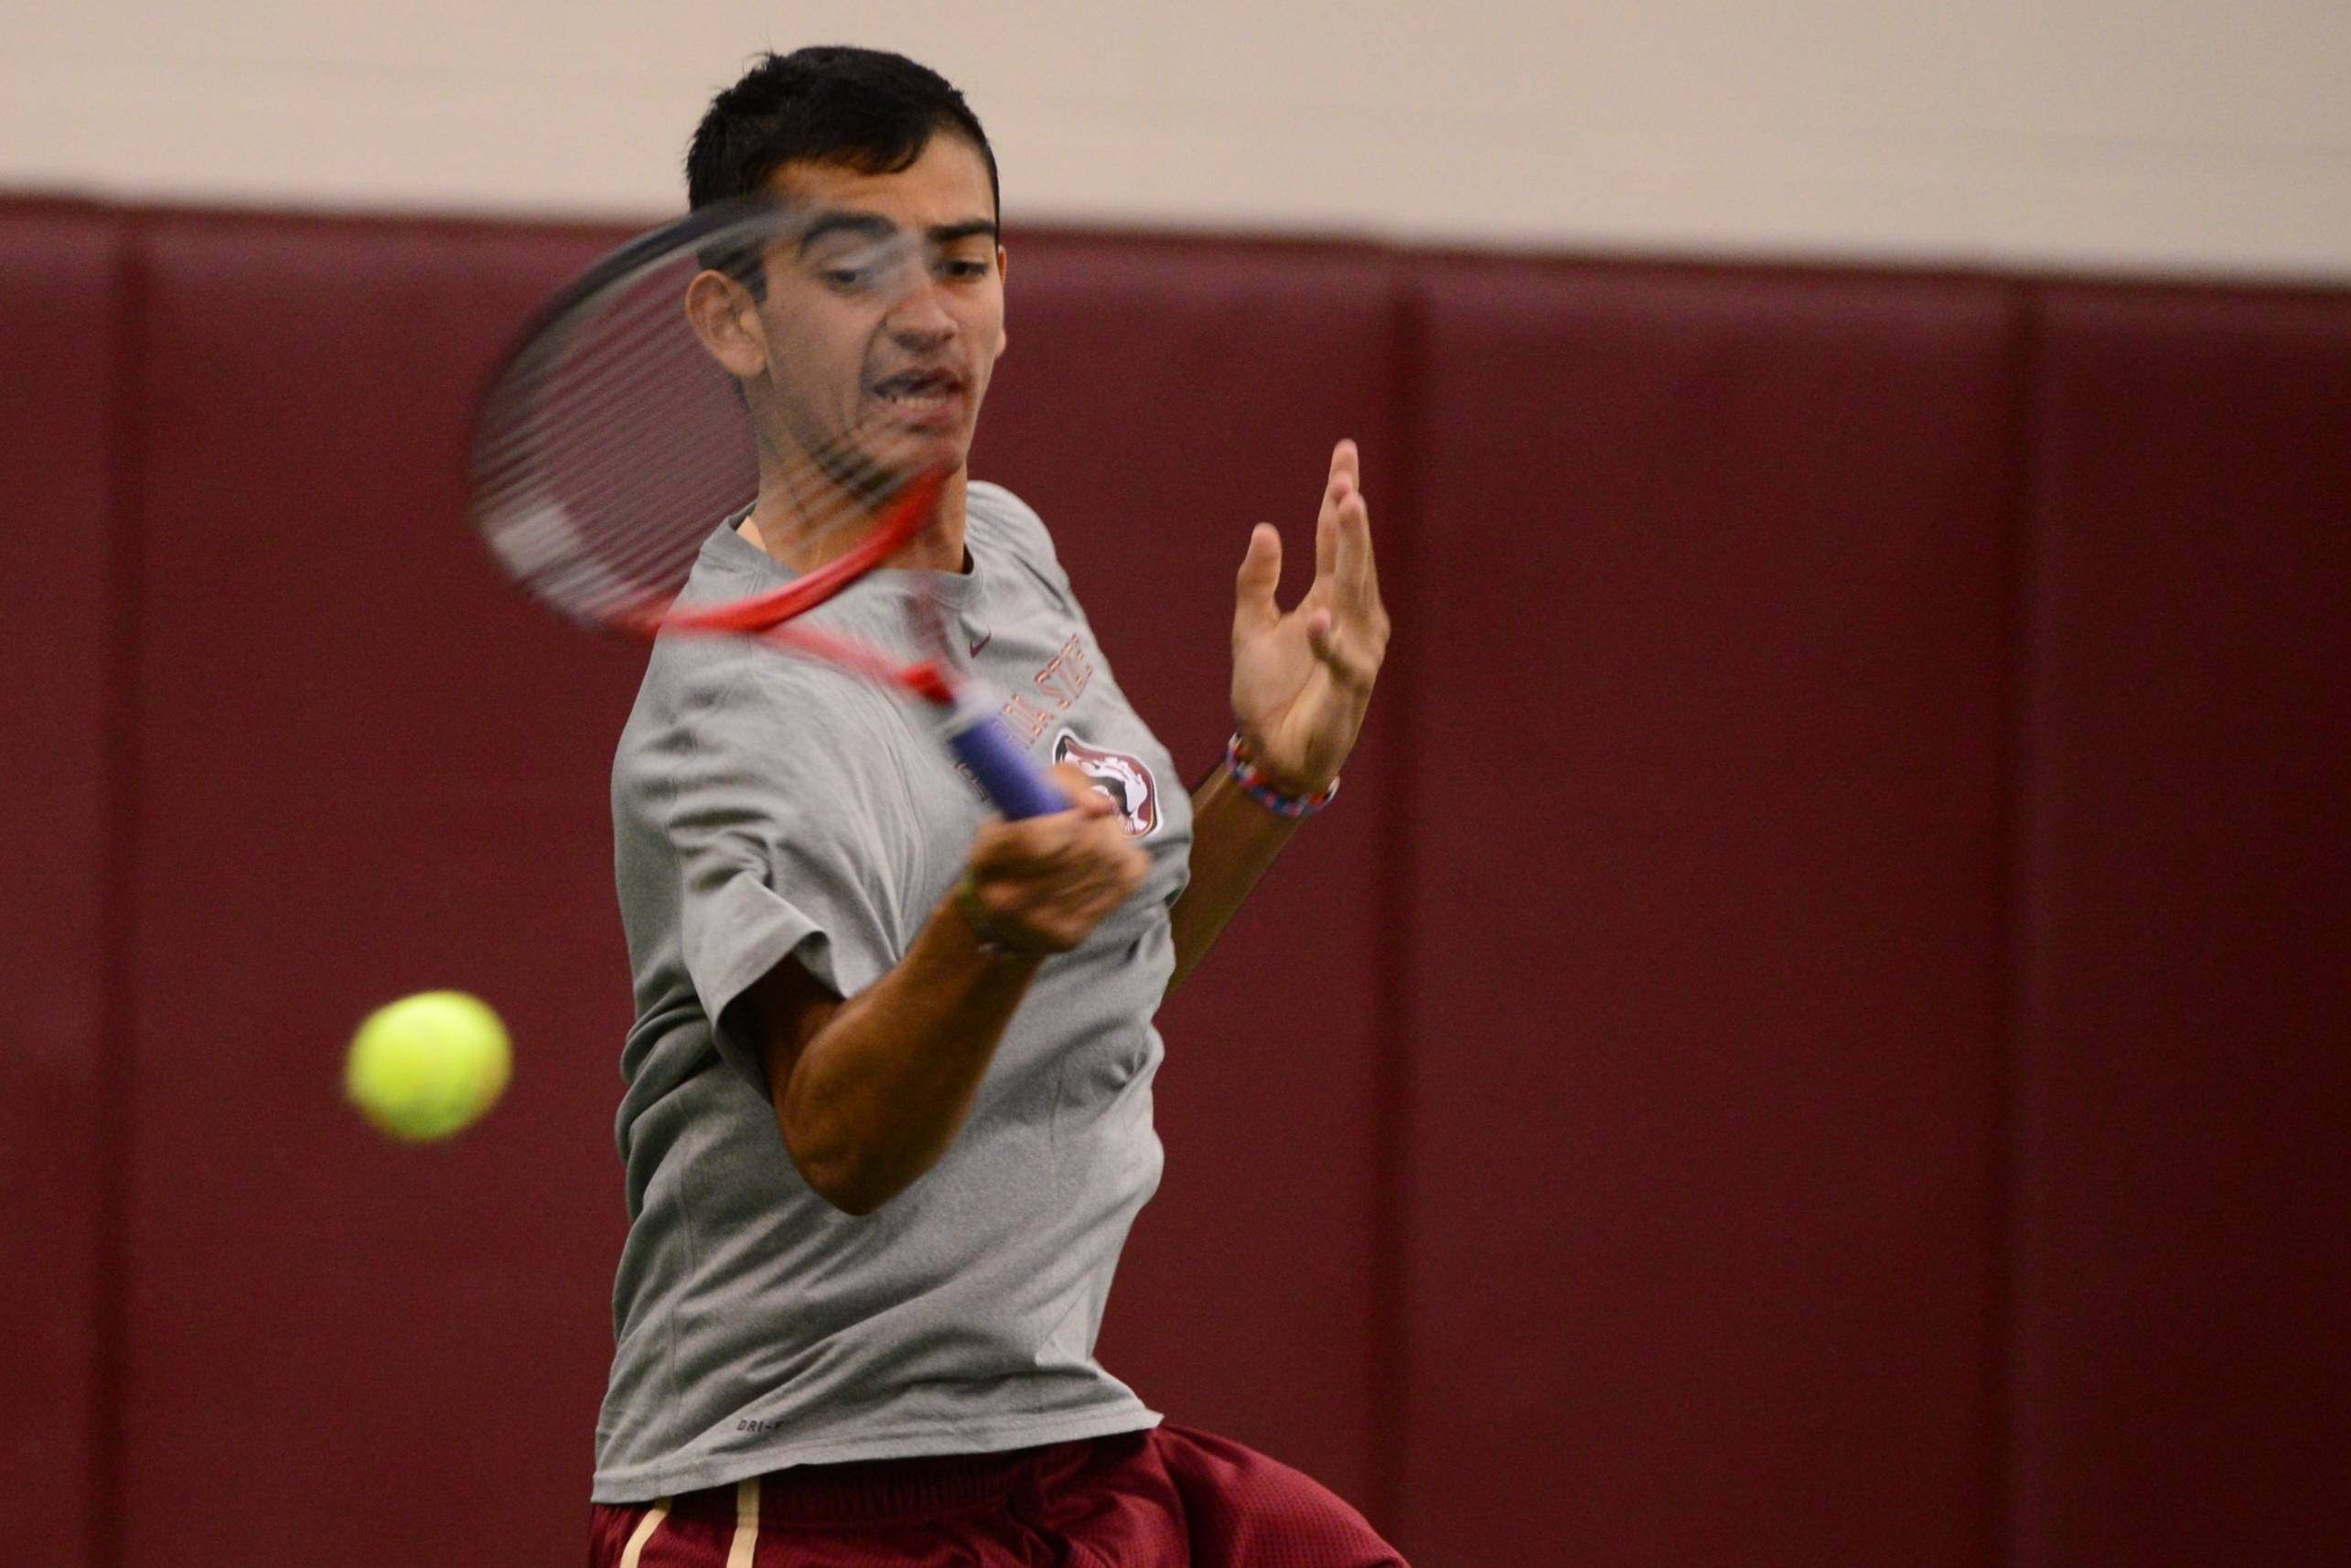 Tallahassee - FL - January 11, 2014:#$%^Florida State Men's Tennis take on North Florida at FSU Indoor Tennis Facility on January 11, 2014 in Tallahassee, FL.  ©2014 Perrone Ford.#$%^#$%^ (Photo by Perrone Ford / PTFPhoto.com)